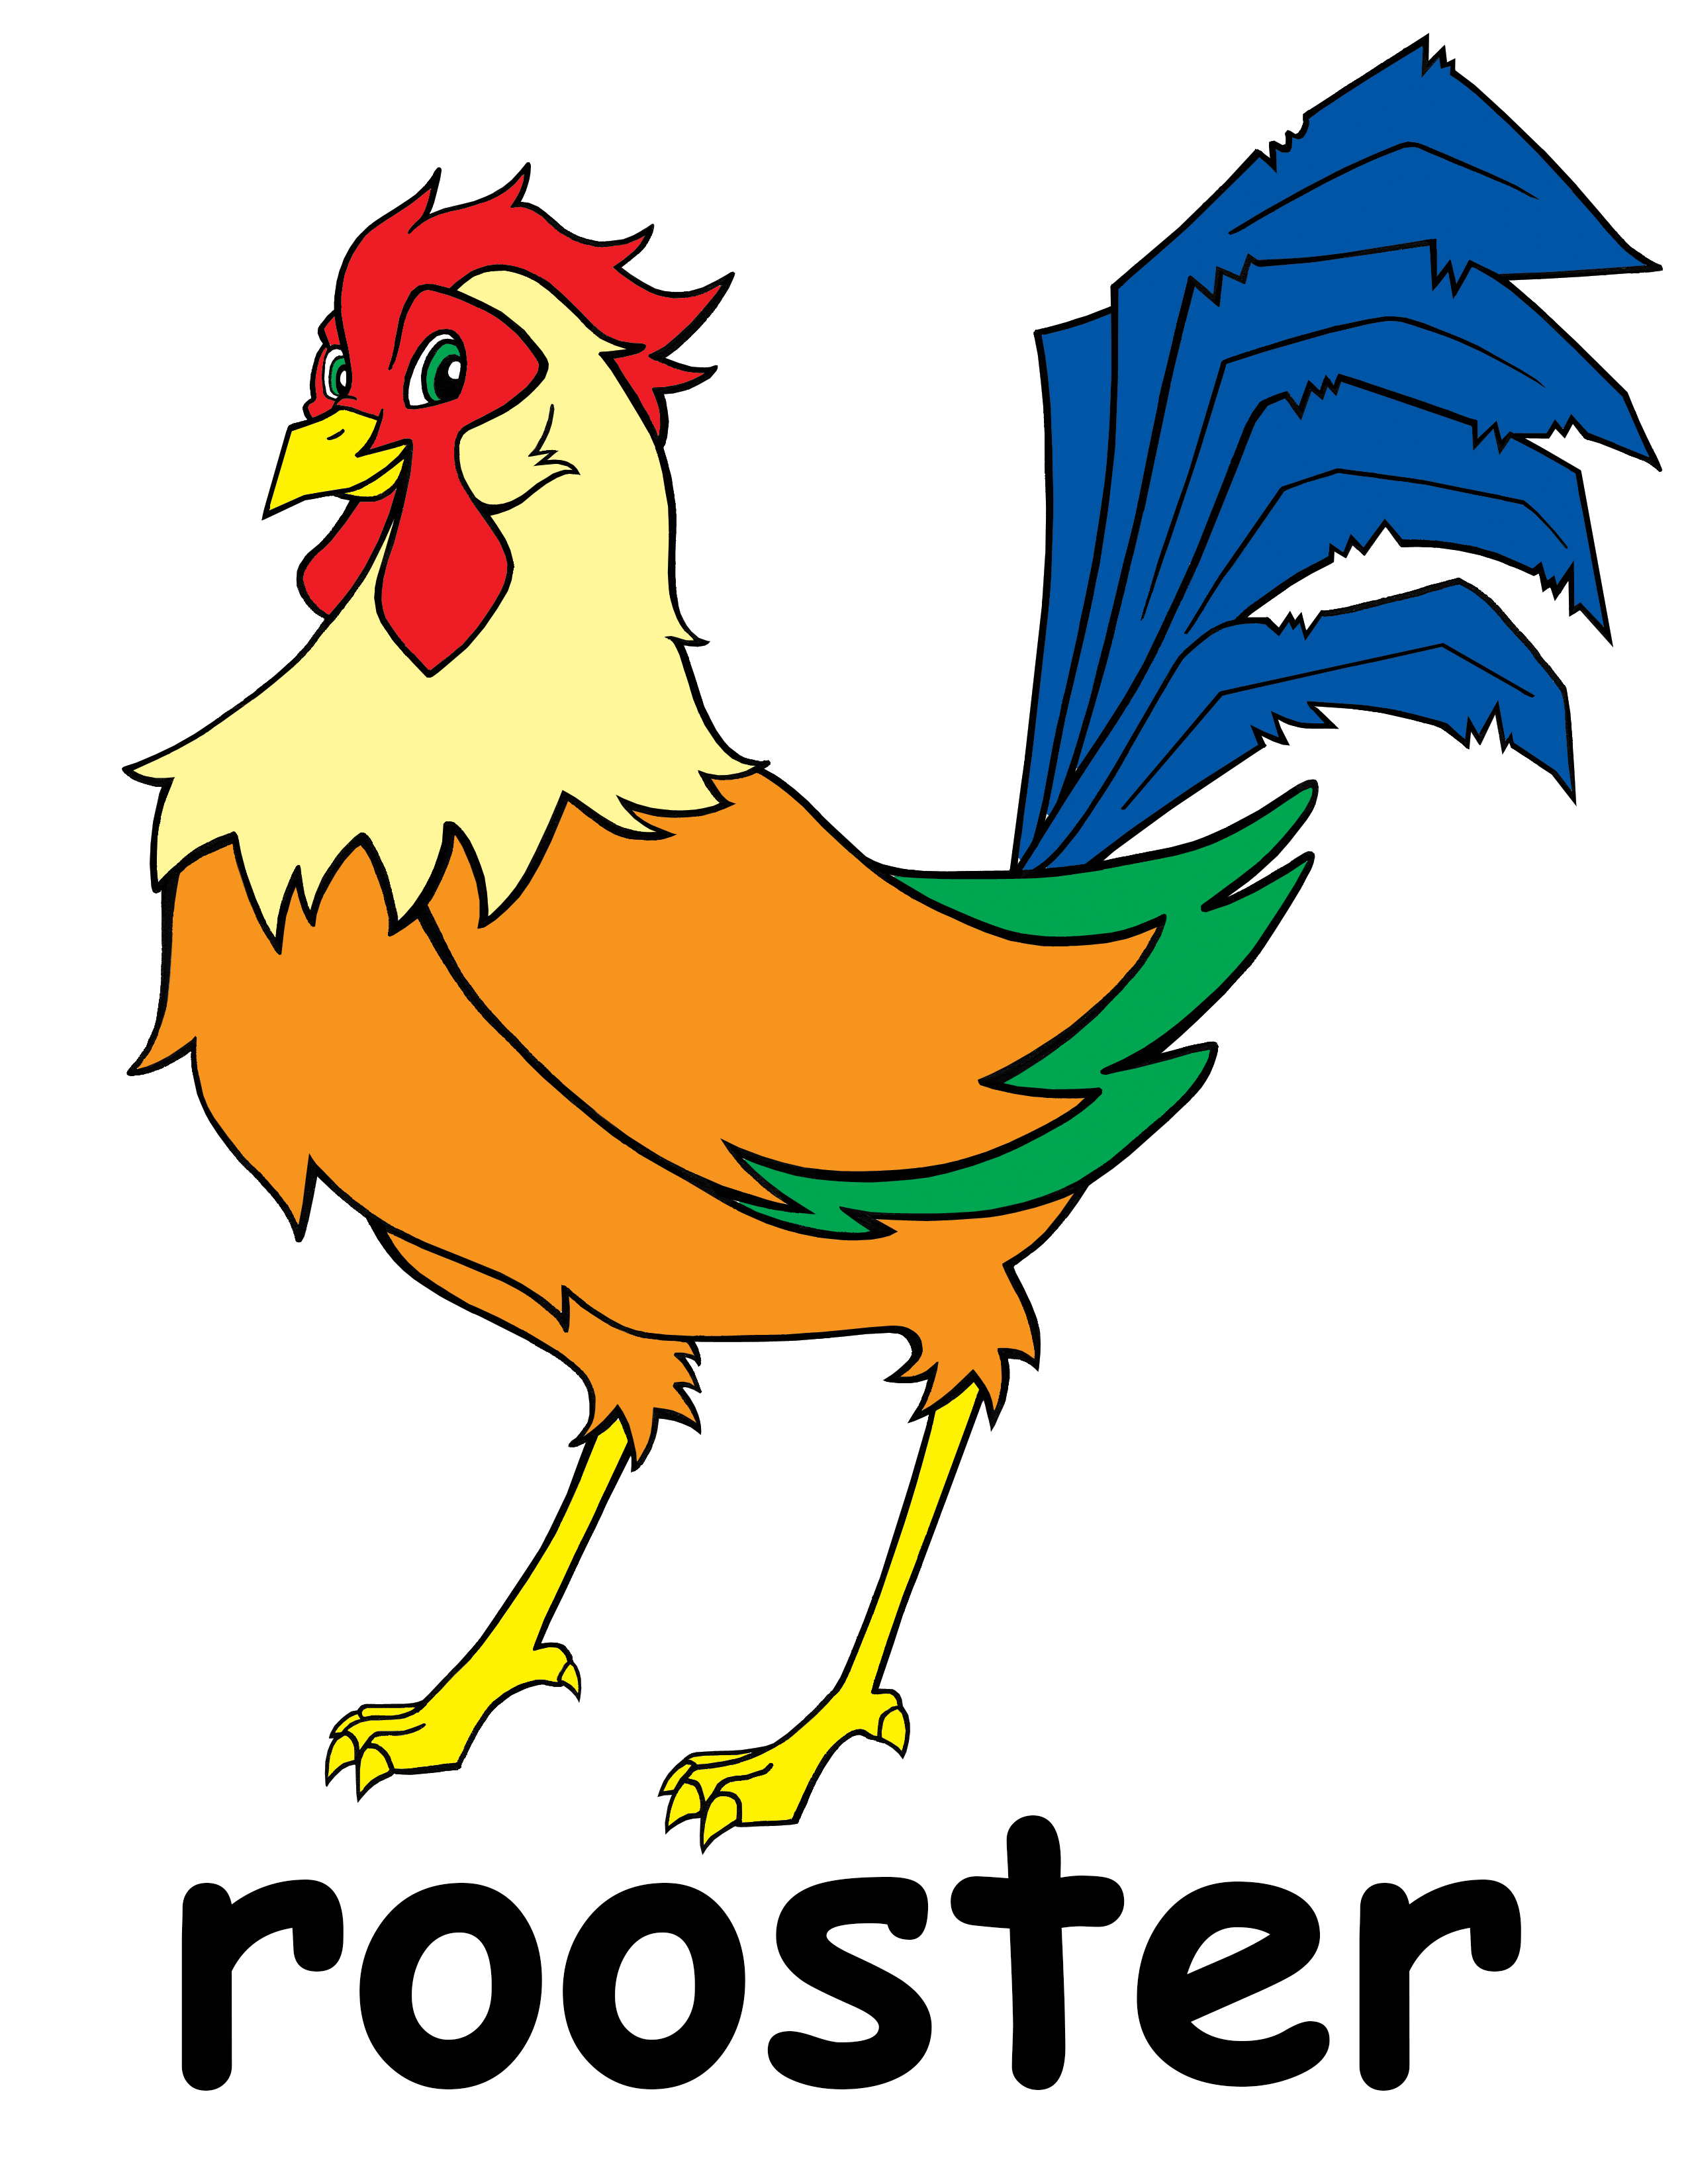 Rooster clipart #5, Download drawings